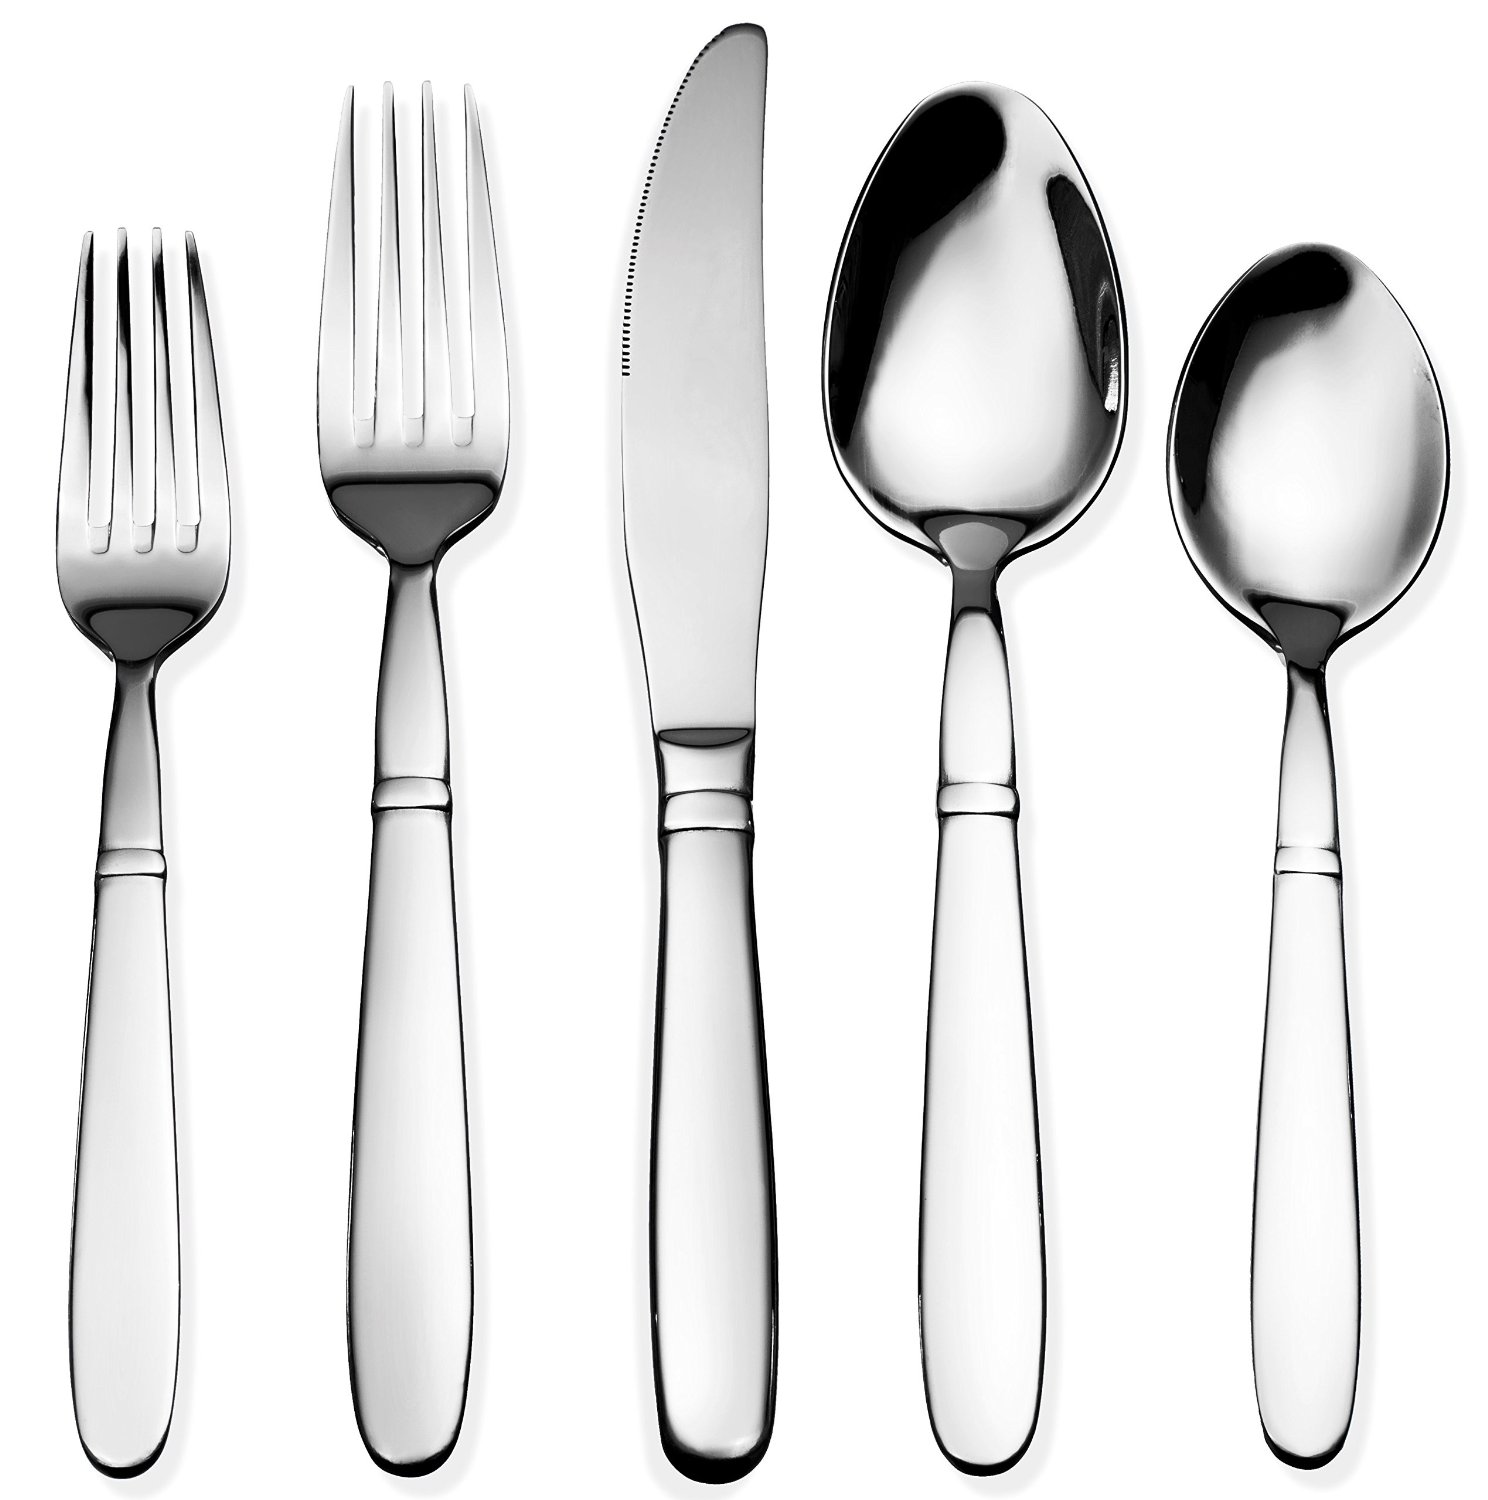 The Top 10 Best Flatware & Silverware Set in 2020